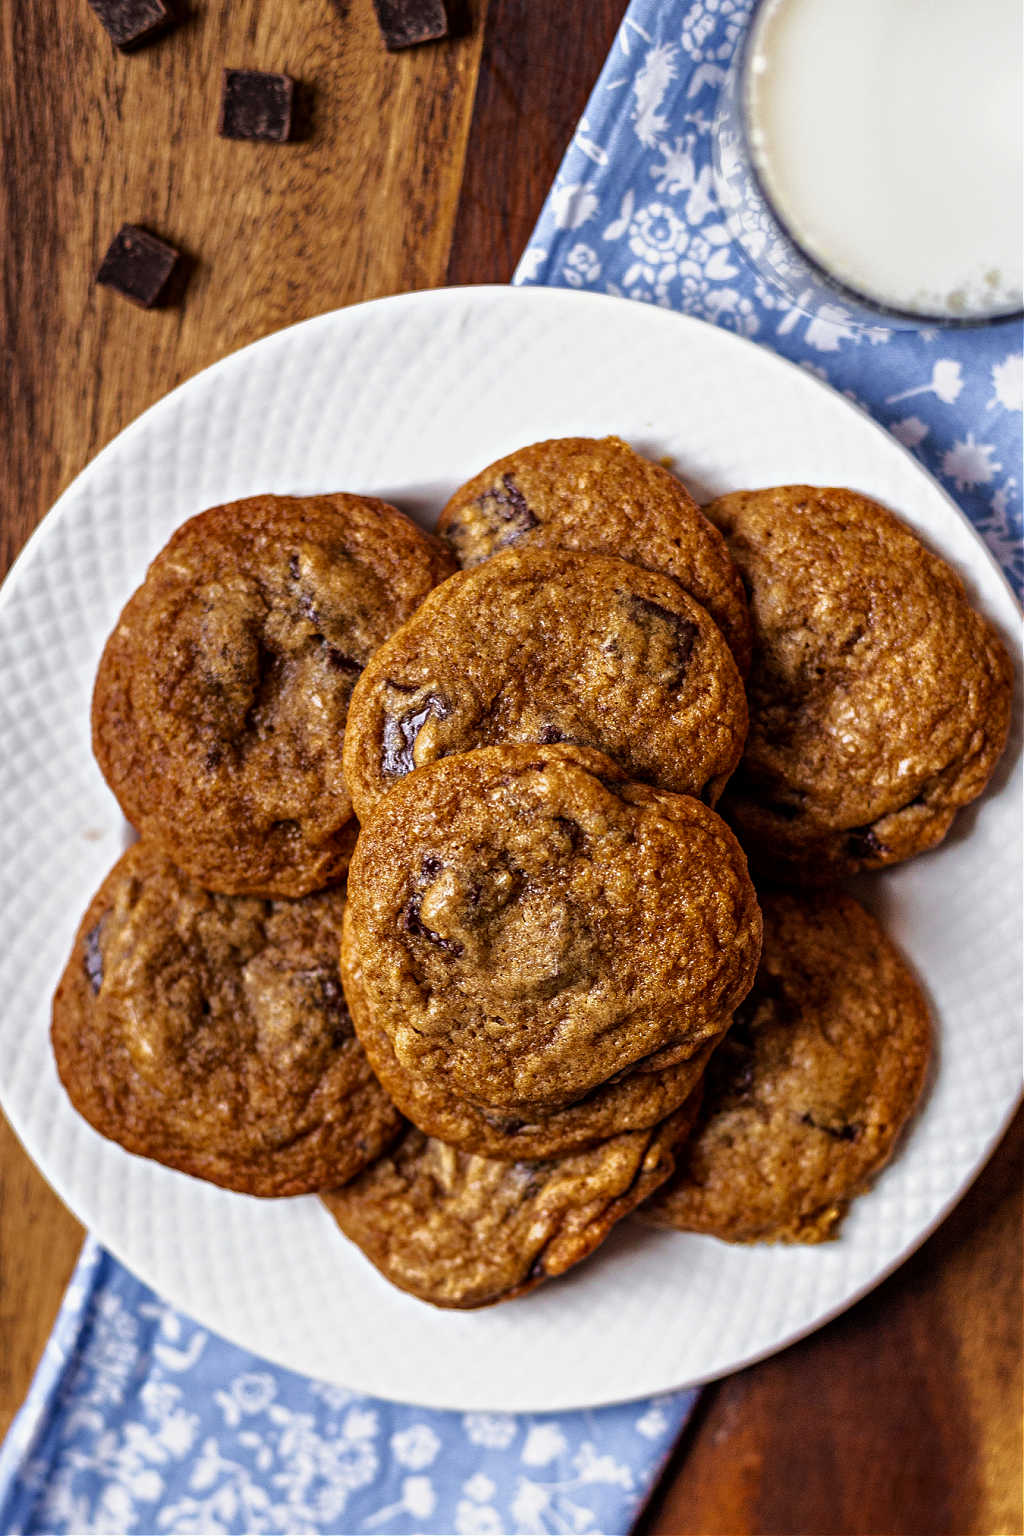 chocolate chunk cookies on a white plate on a wooden table.